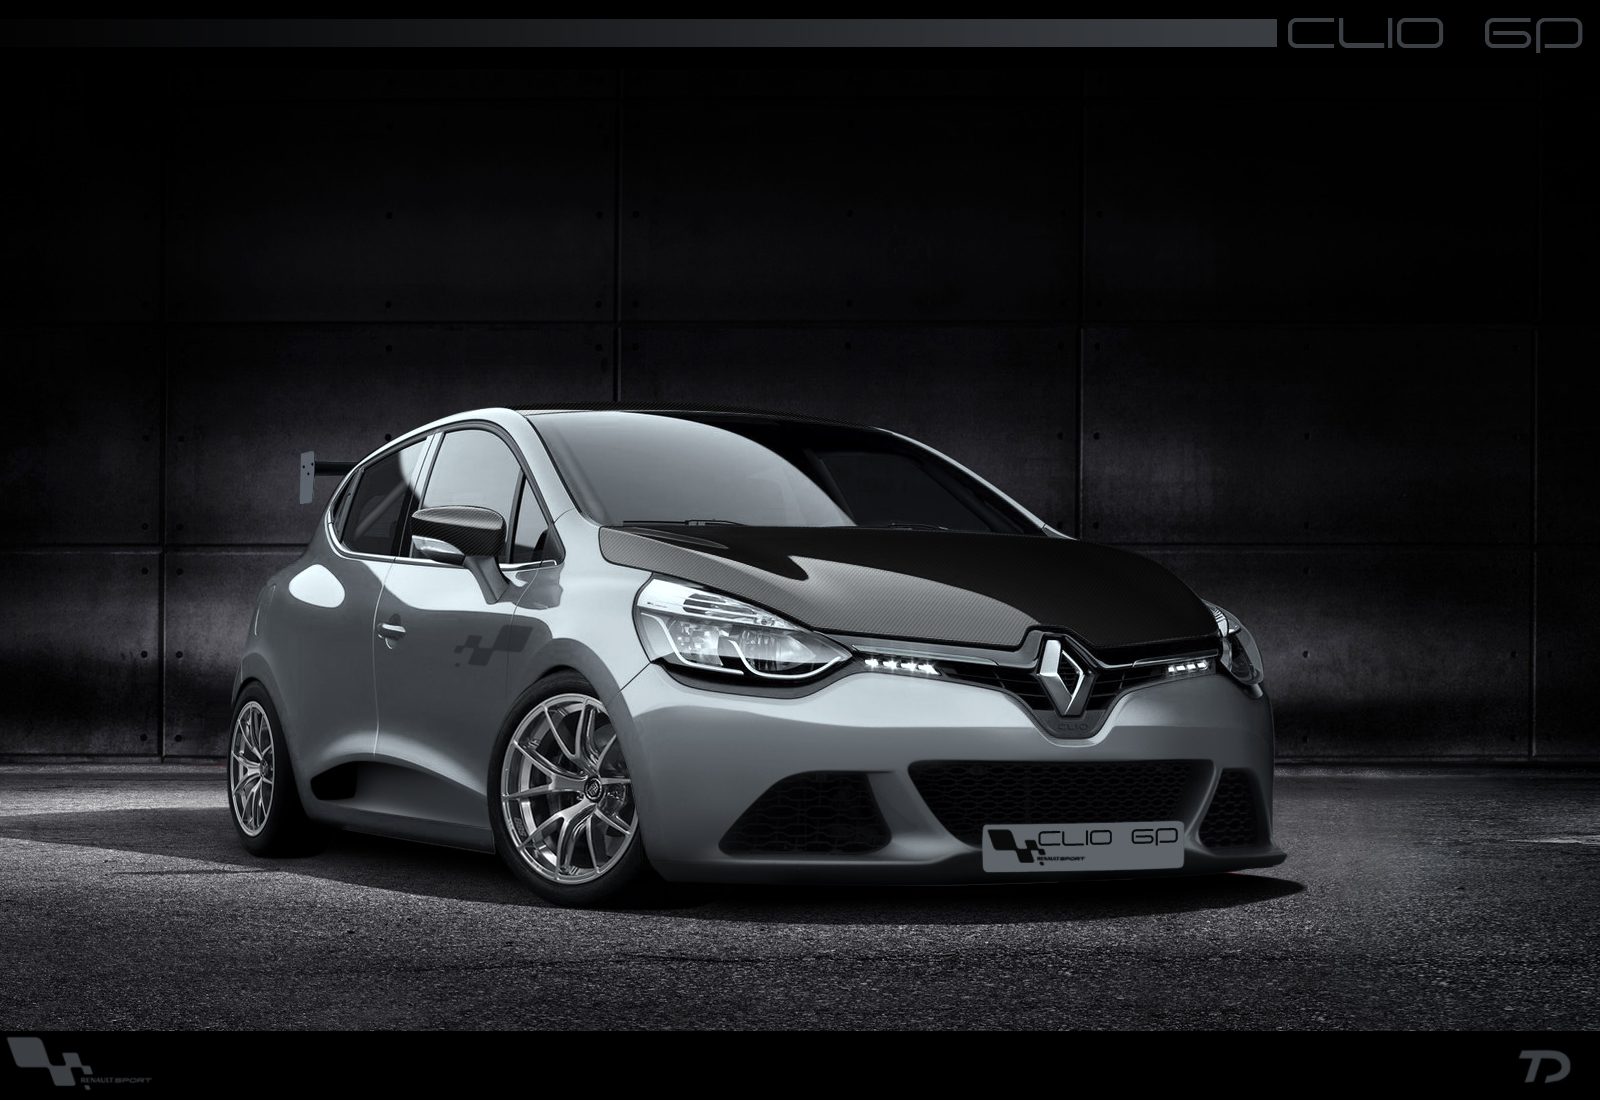 Renault Clio GP by TeofiloDesign